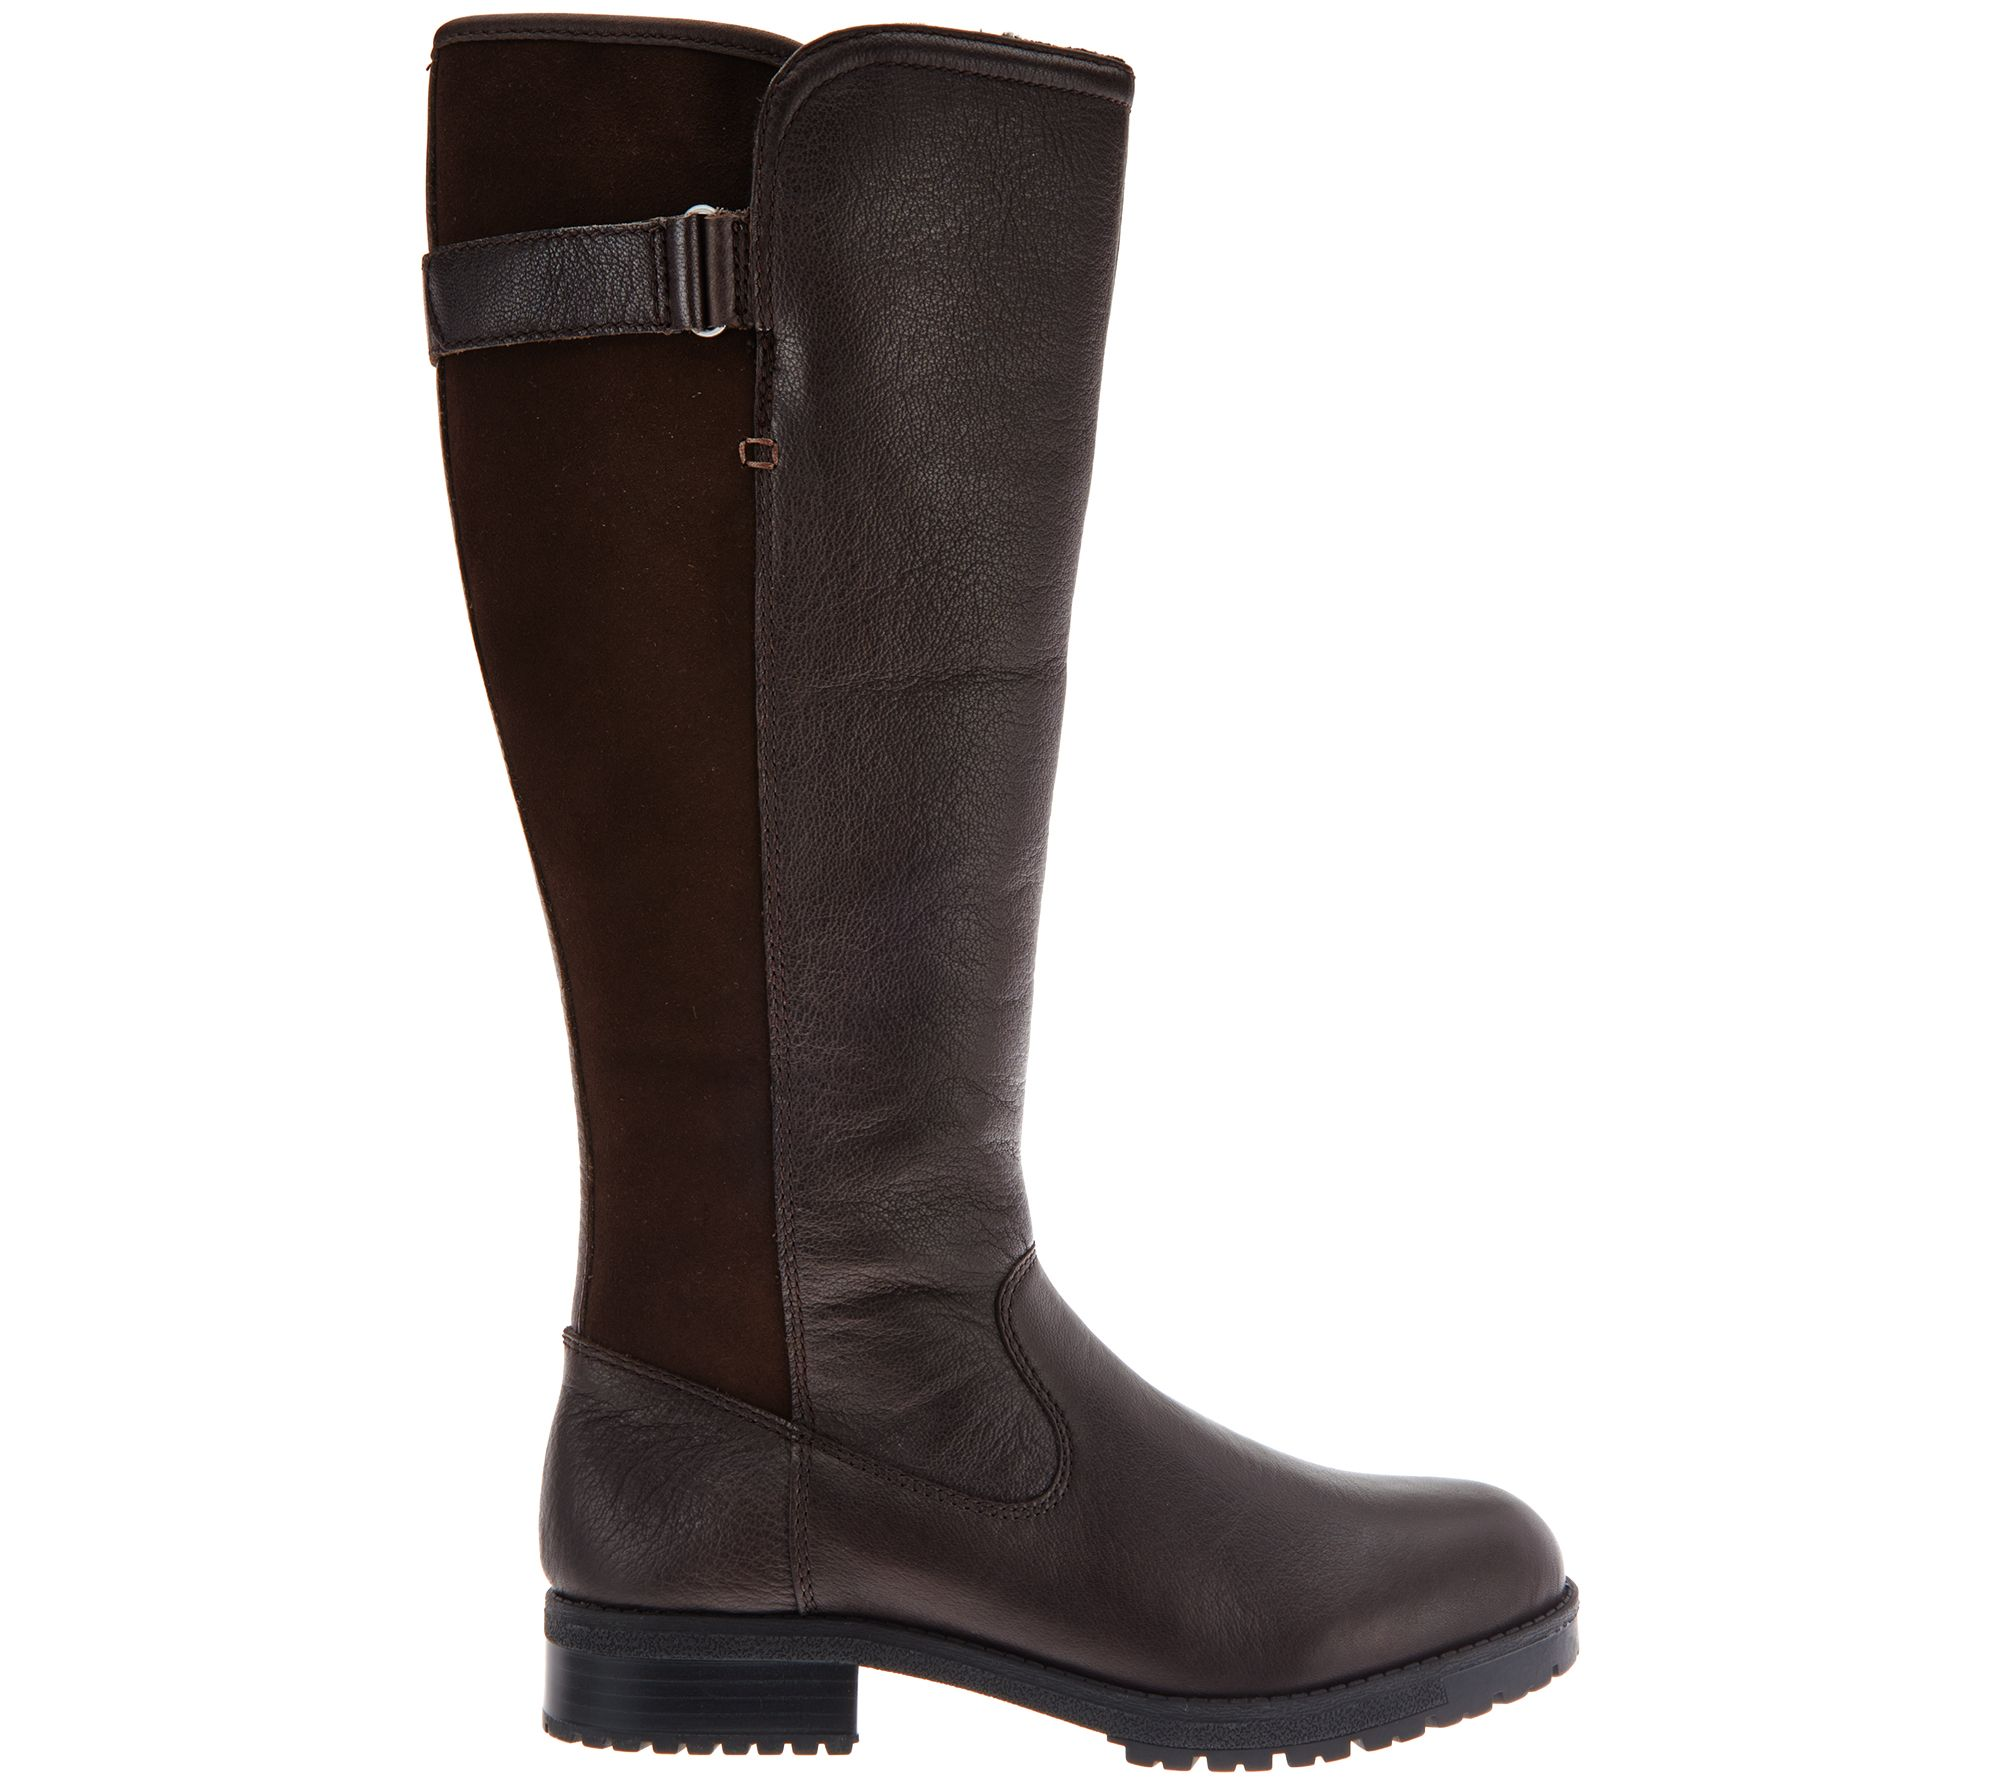 481c57d0bb4 Clarks Leather Waterproof Tall Shaft Boots - Faralyn May - Page 1 — QVC.com